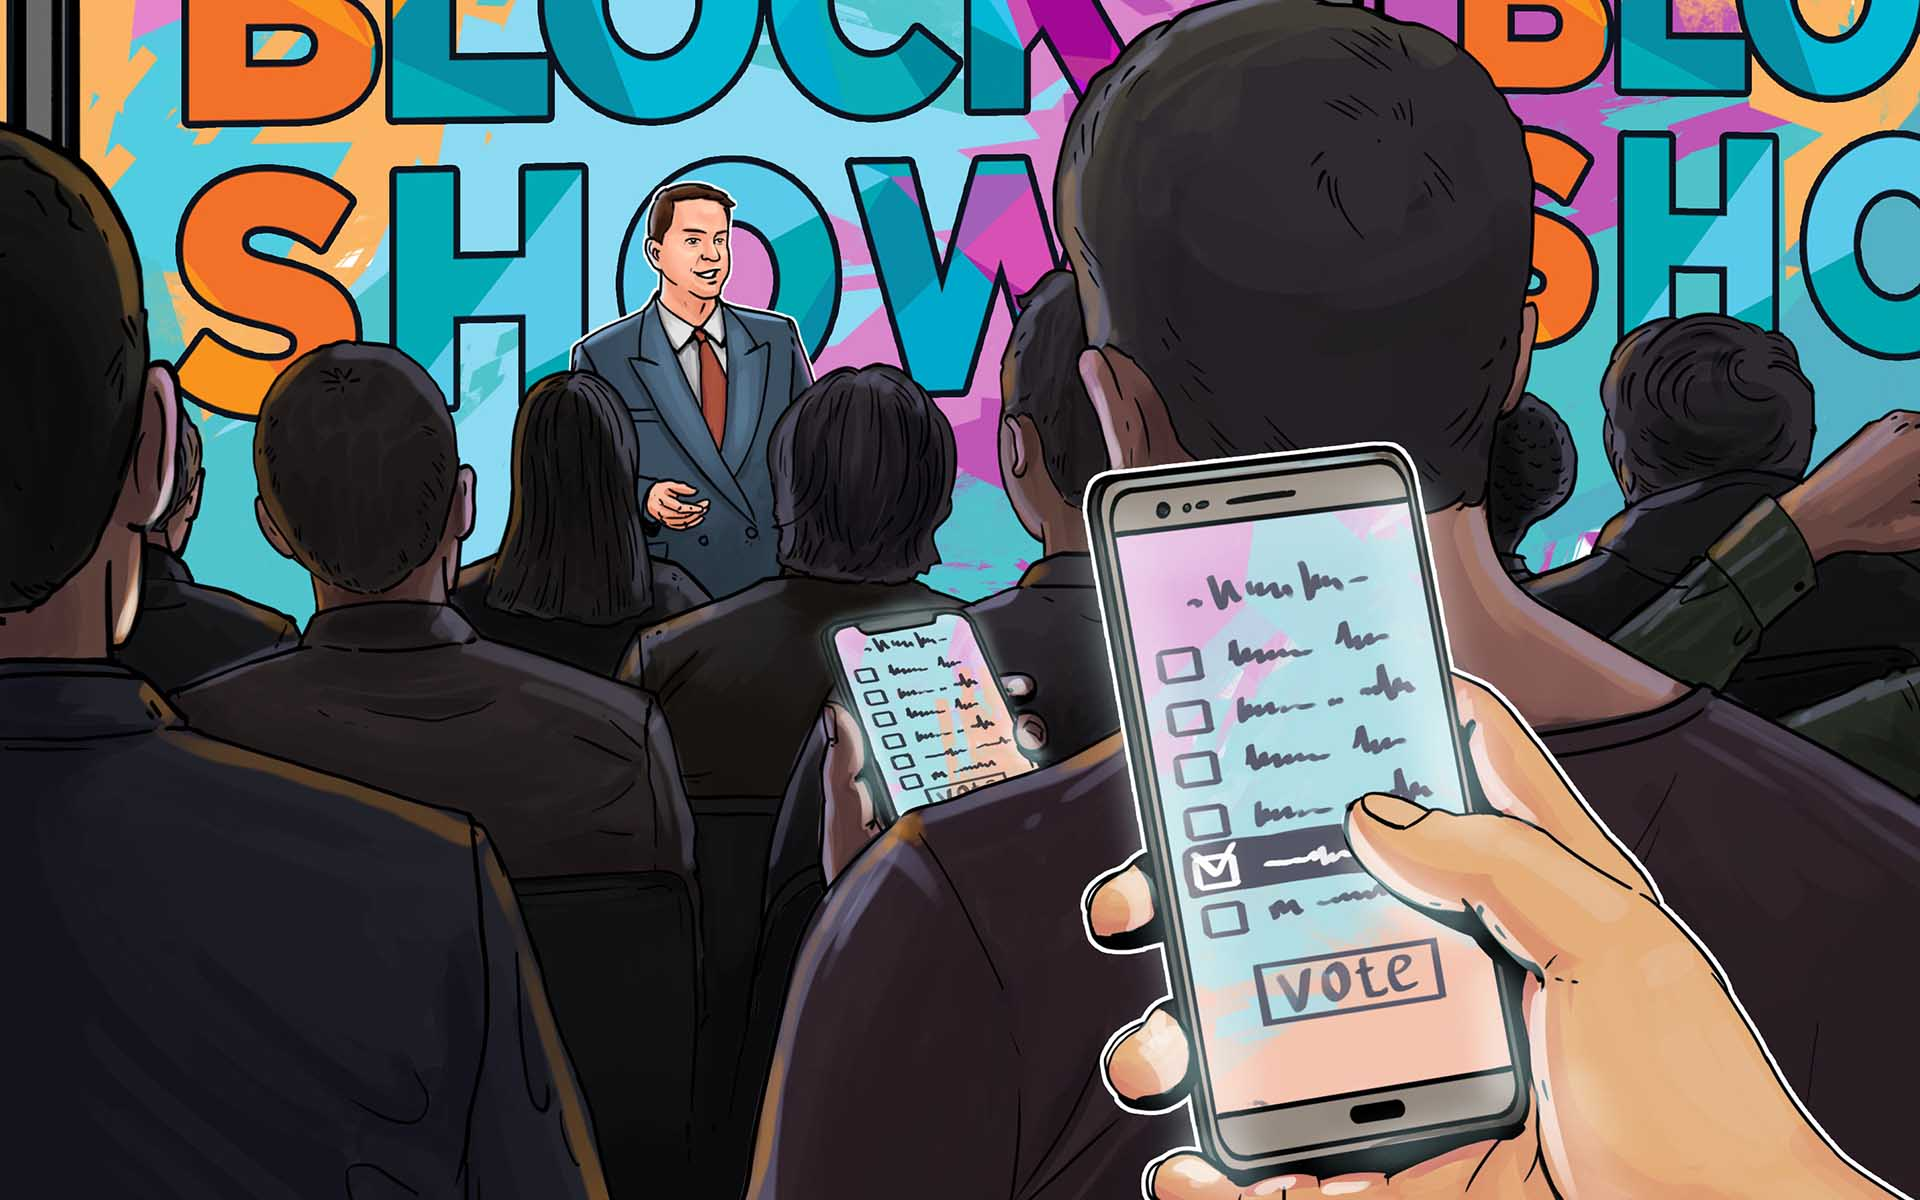 BlockShow Set to Use World's First Blockchain Polling Application During Their Blockchain Conference in Berlin